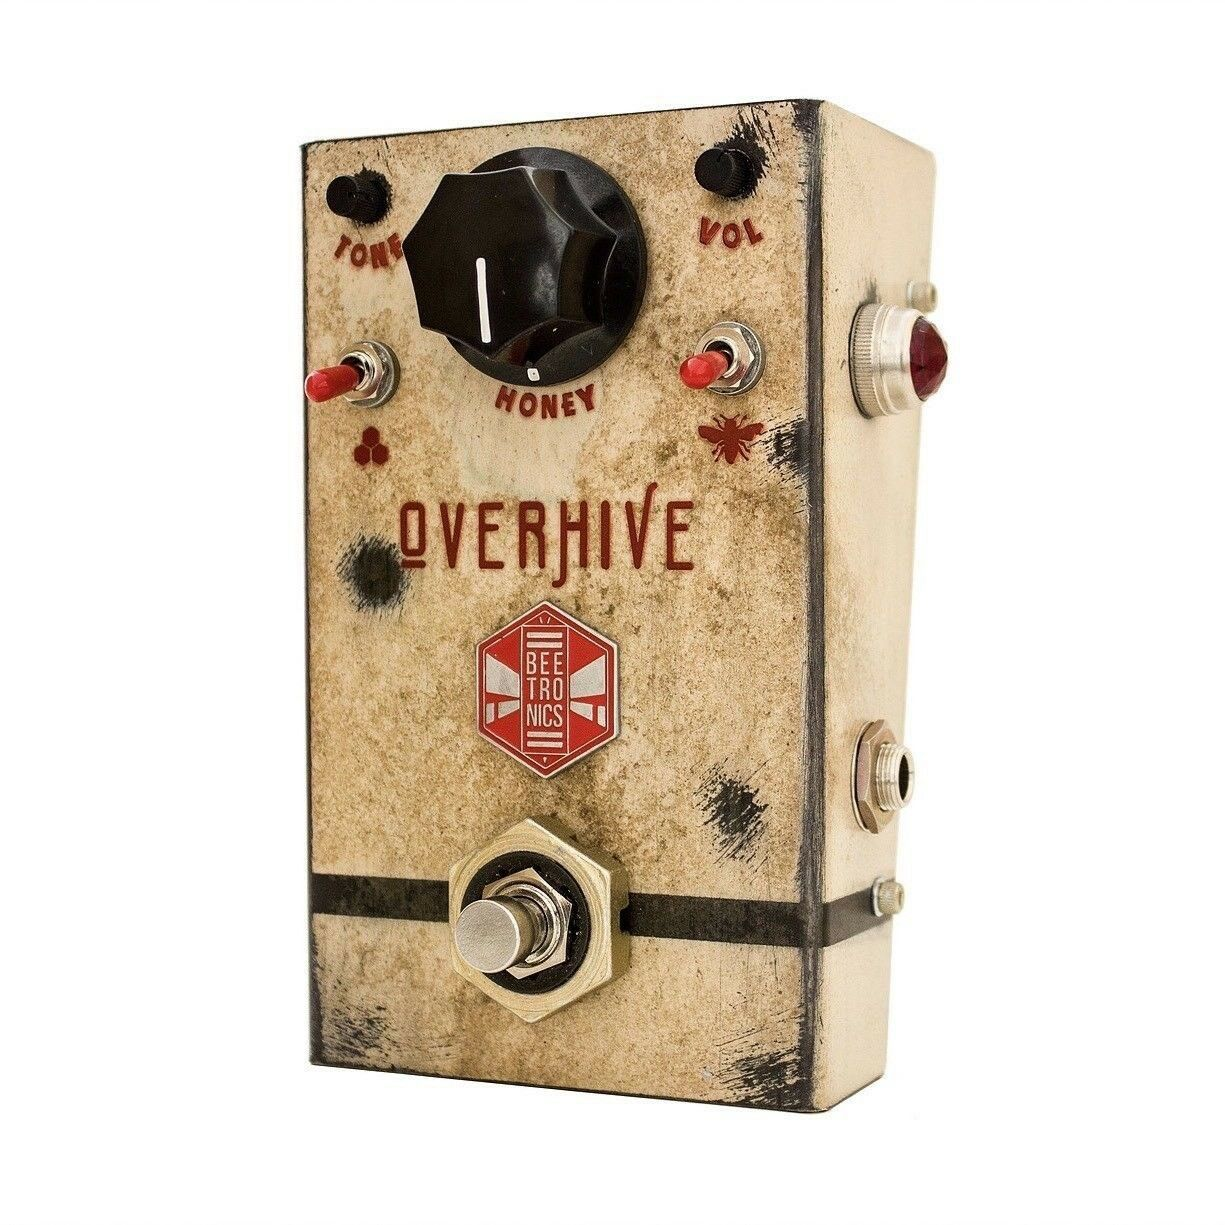 BEETRONICS FX - Overhive Overdrive Guitar Pedal